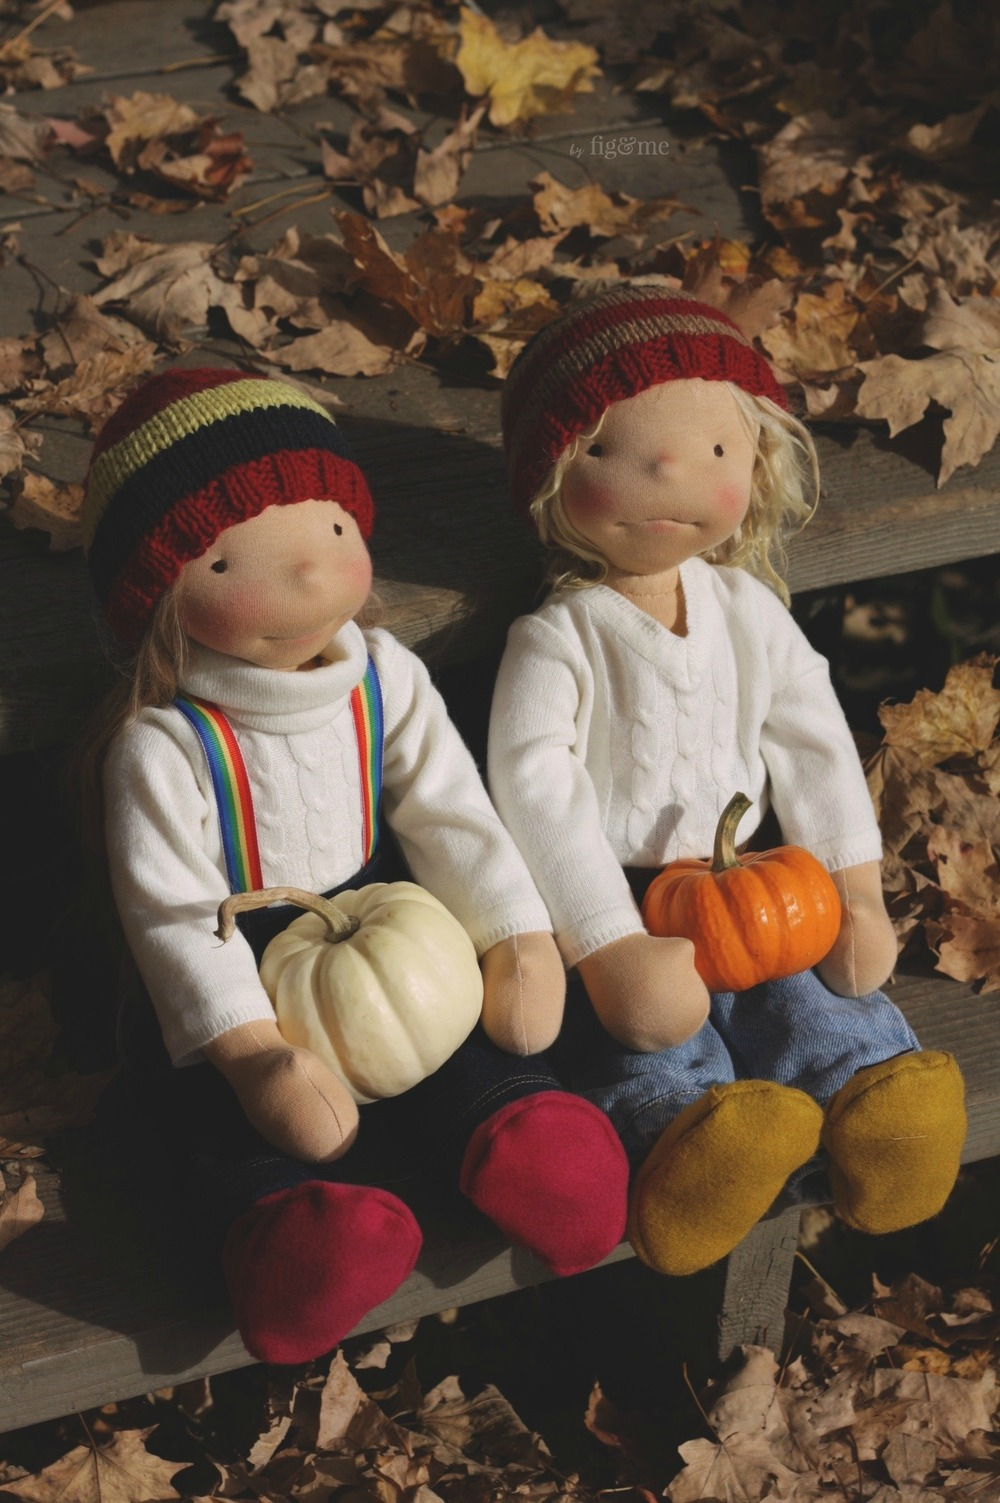 Tonja and Kelly, two custom natural fiber art dolls ready for Halloween. By Fig and me.